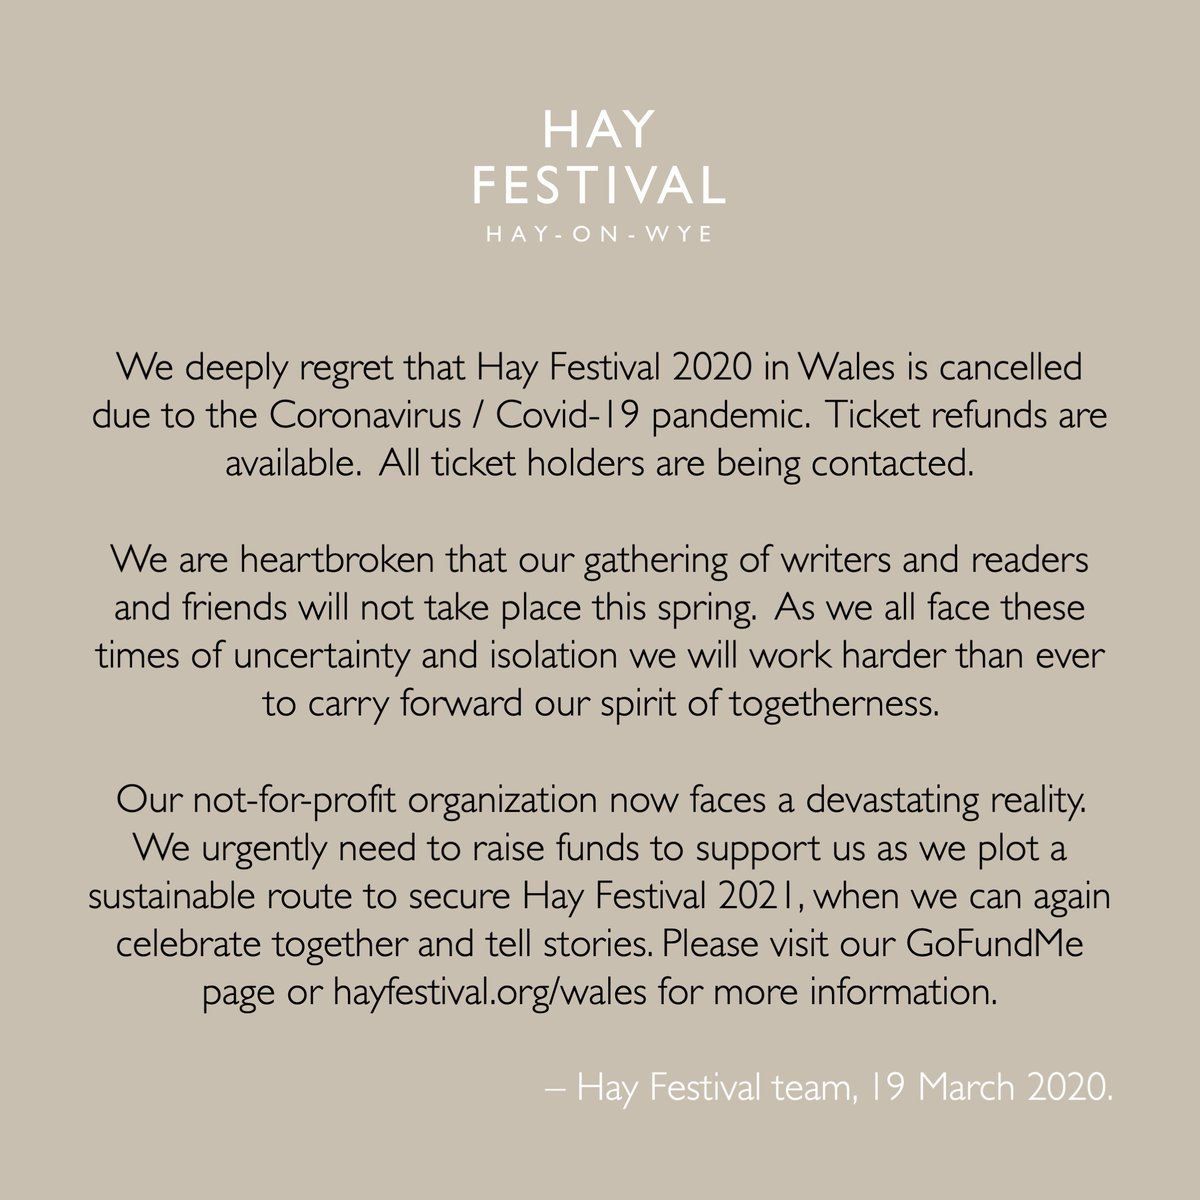 Haymakers, some important news. hayfestival.org/wales #HelpHayFestival